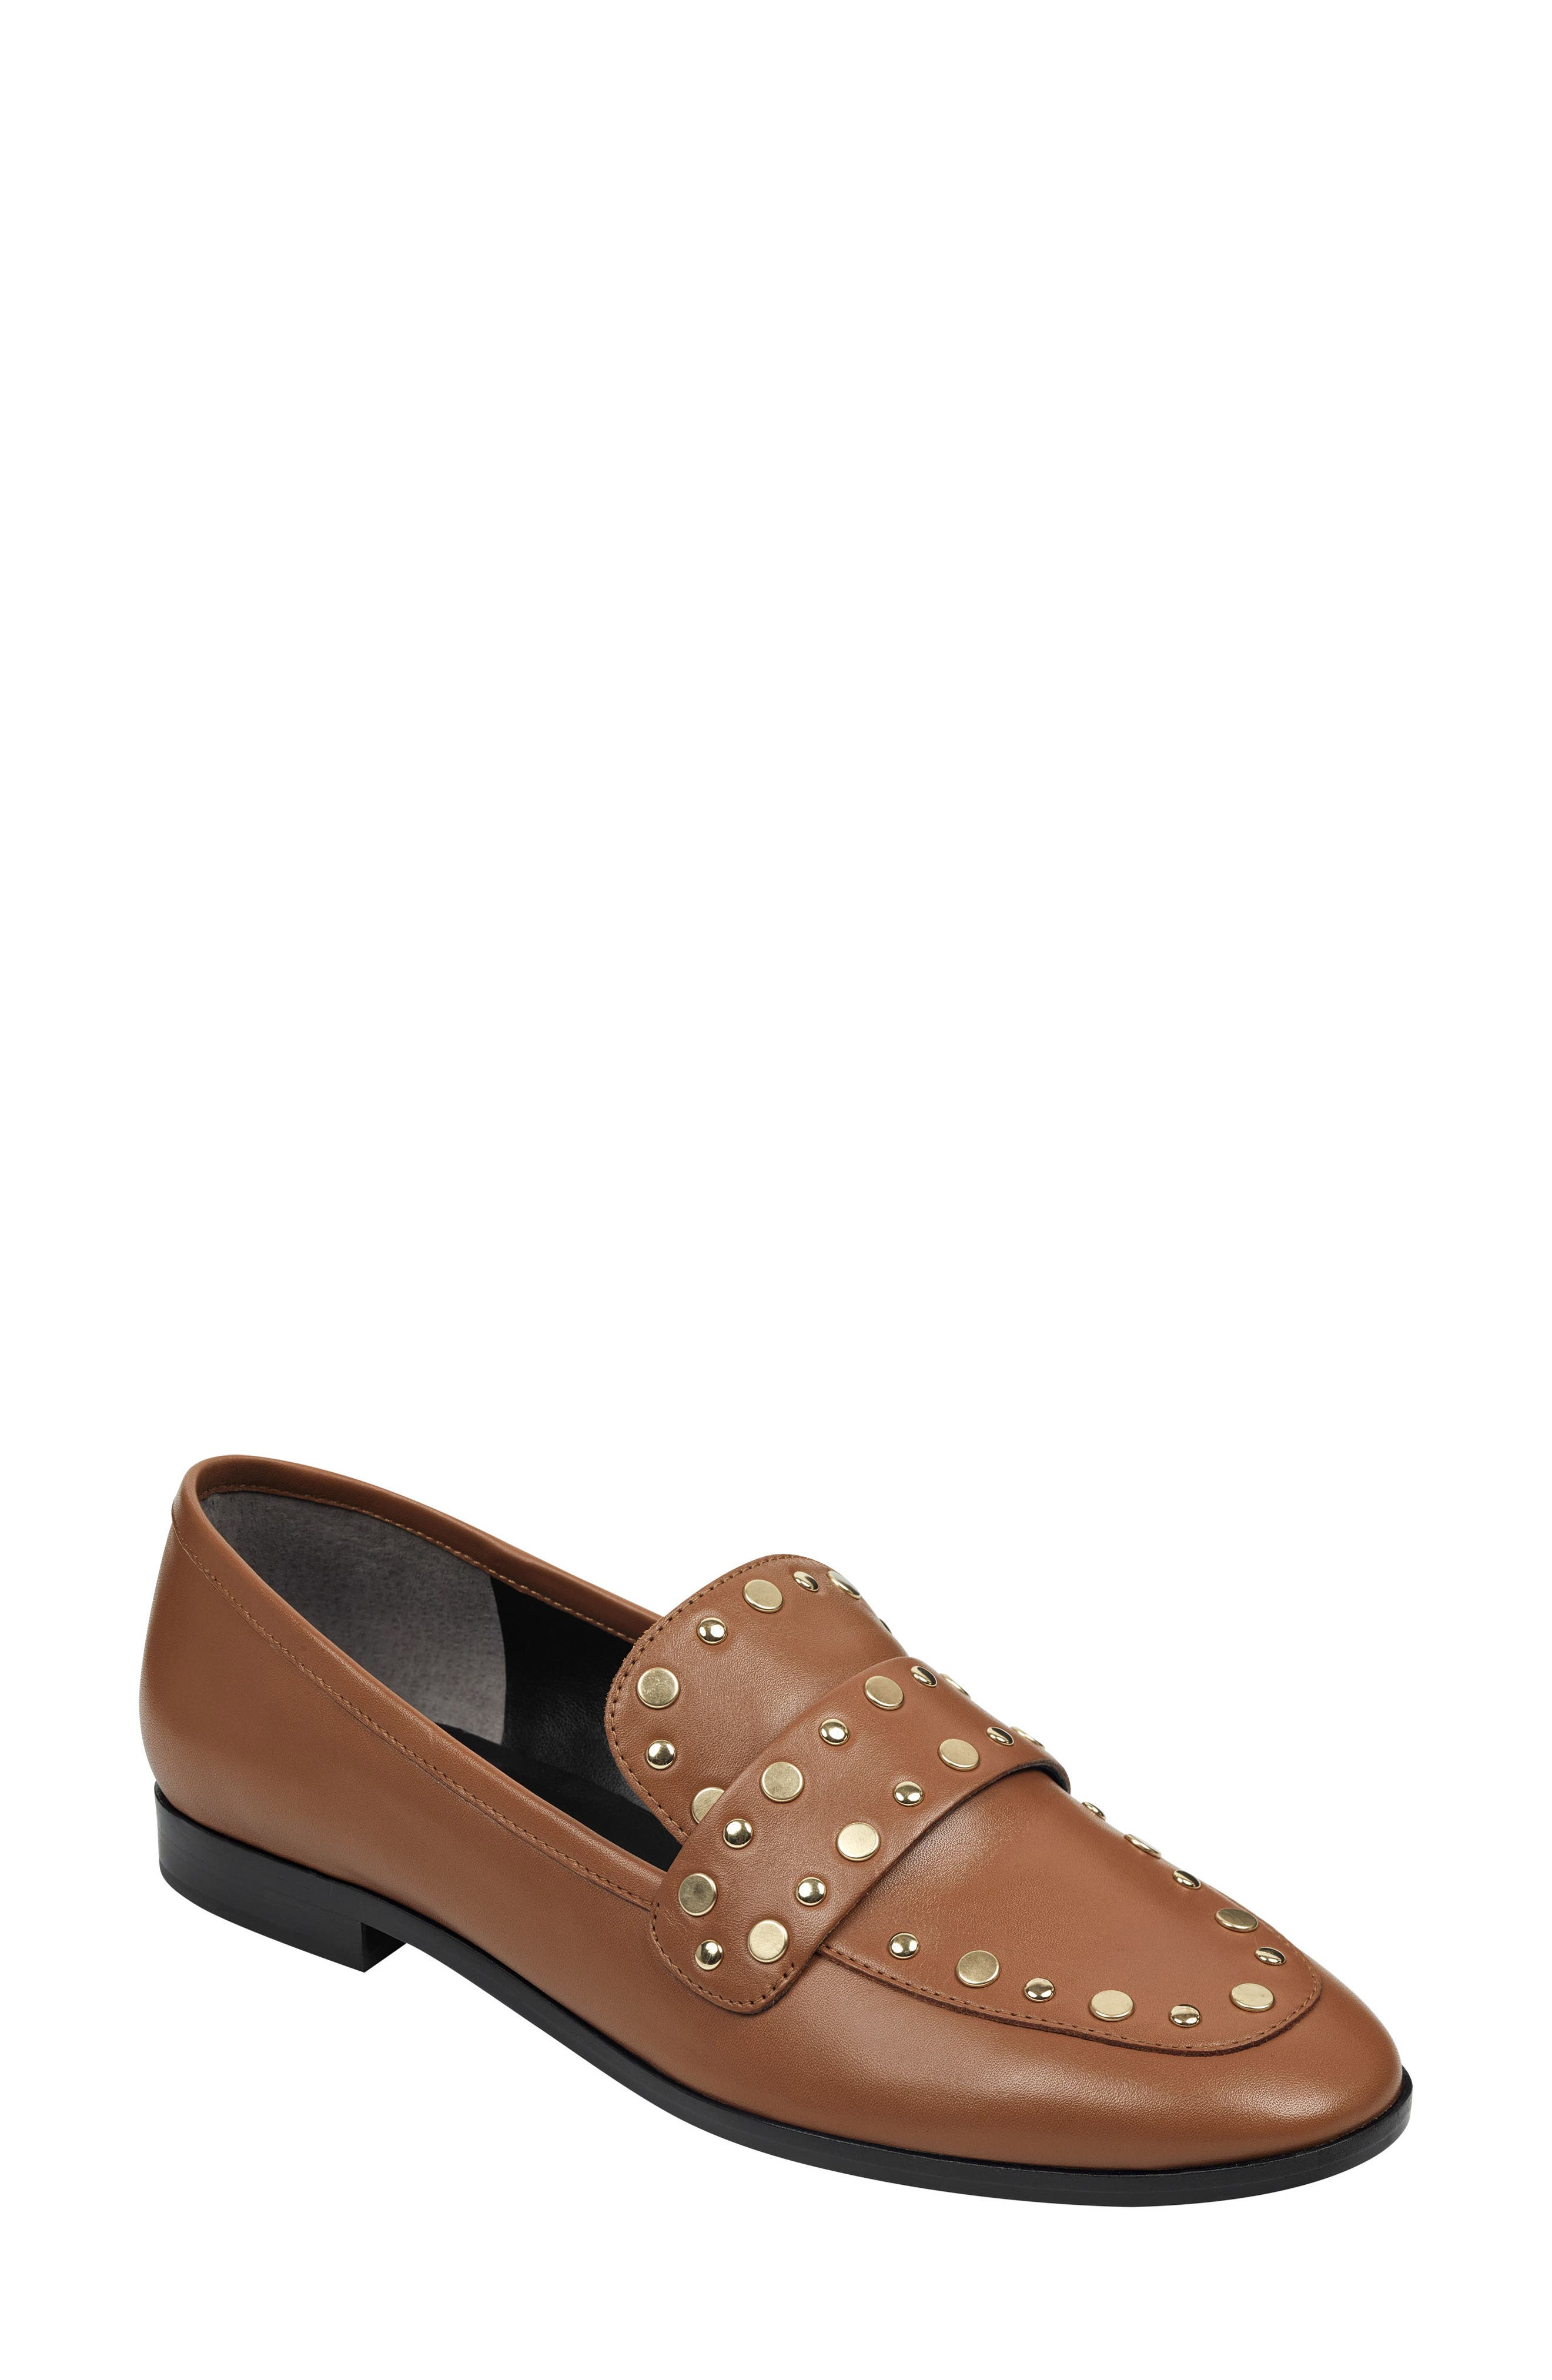 Marc Fisher Ltd Zimma Studded Loafer In Dbrle